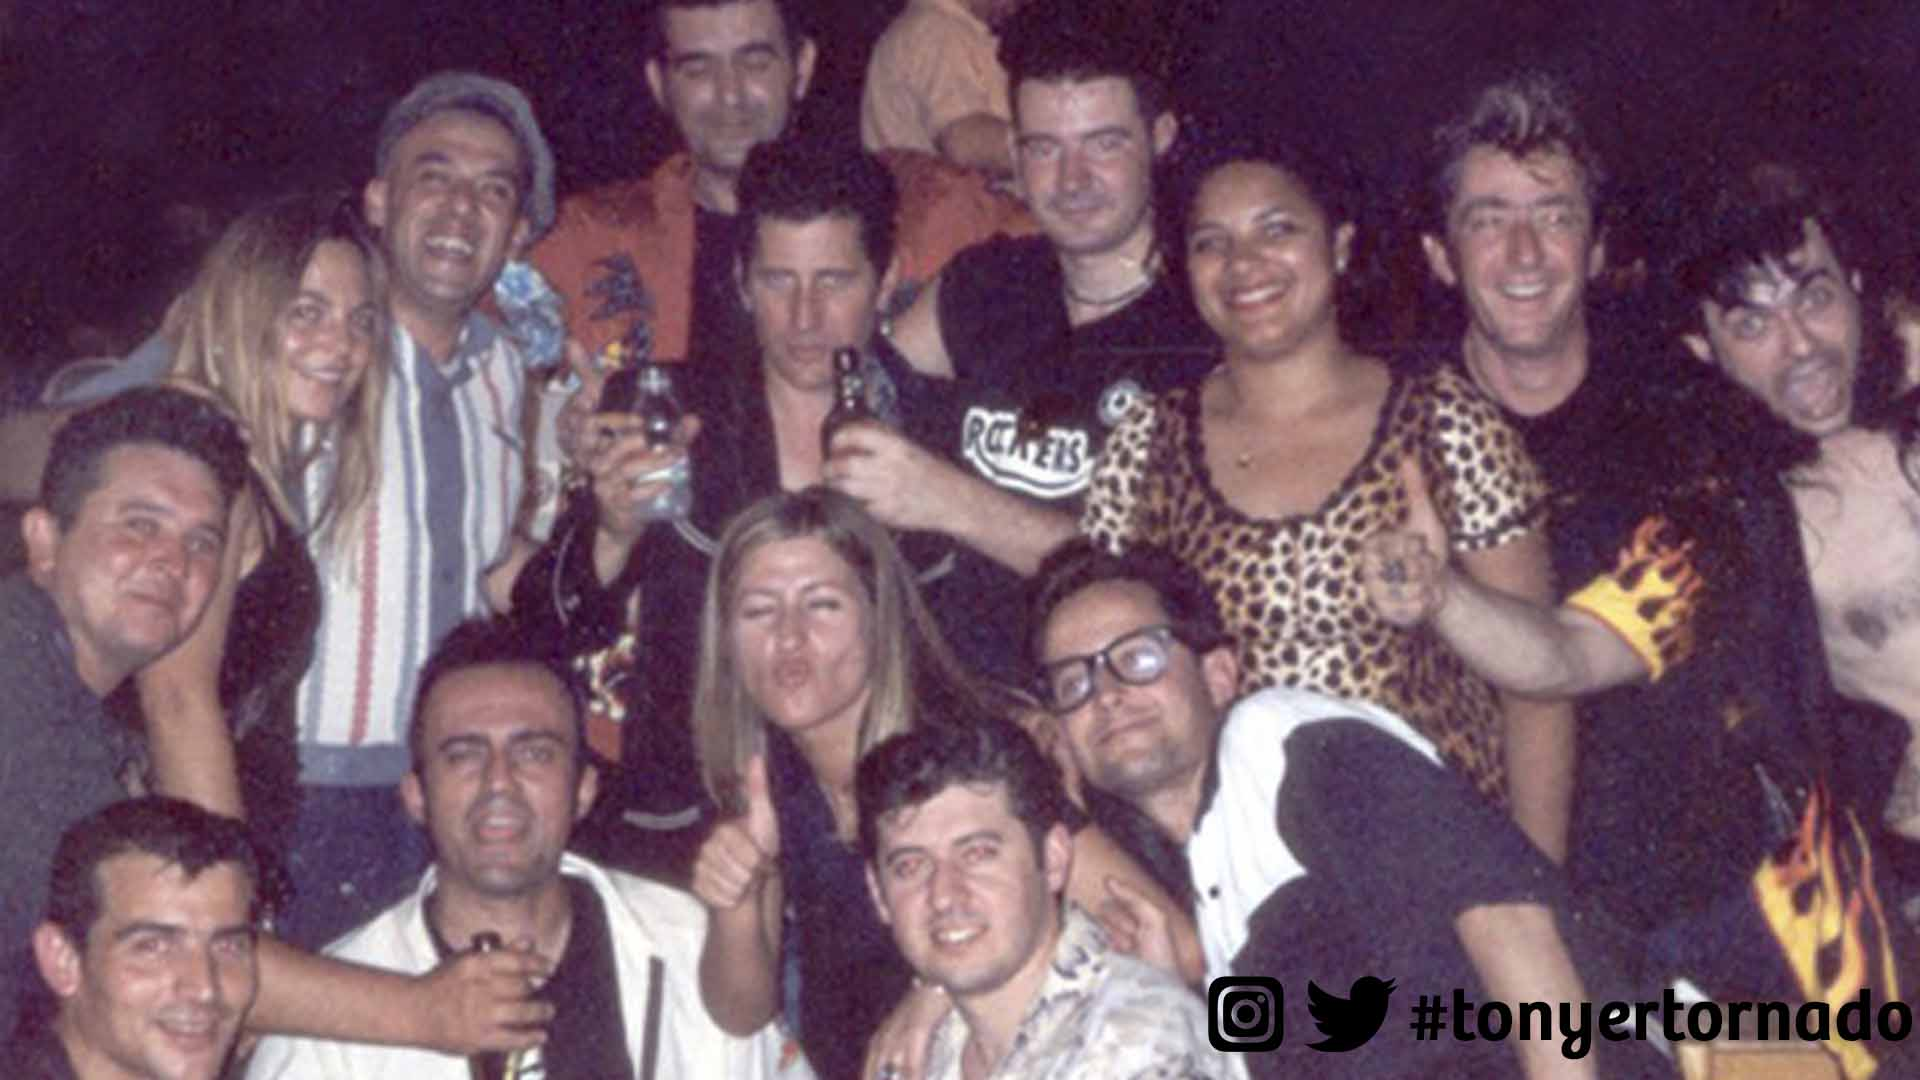 Concierto Lee Rocker (Stray Cats) con Charly (D.E.P.). Eivissa, Illes Balears. 2001